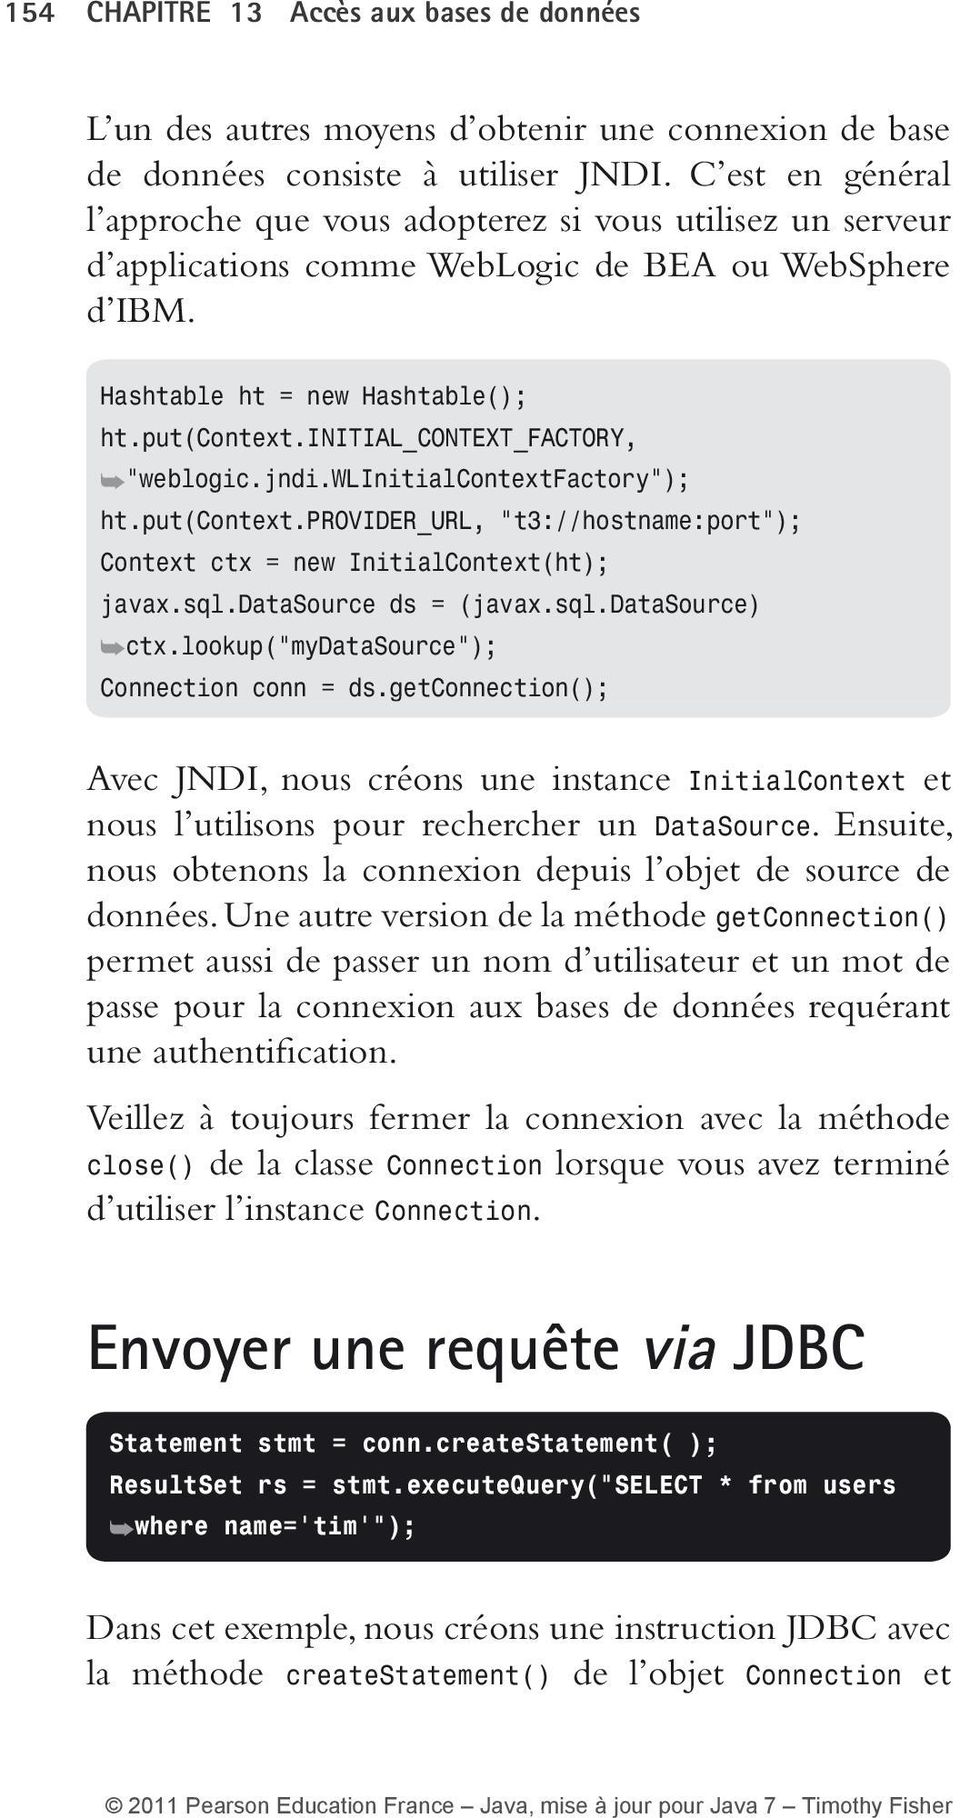 initial_context_factory, weblogic.jndi.wlinitialcontextfactory ); ht.put(context.provider_url, t3://hostname:port ); Context ctx = new InitialContext(ht); javax.sql.datasource ds = (javax.sql.datasource) ctx.